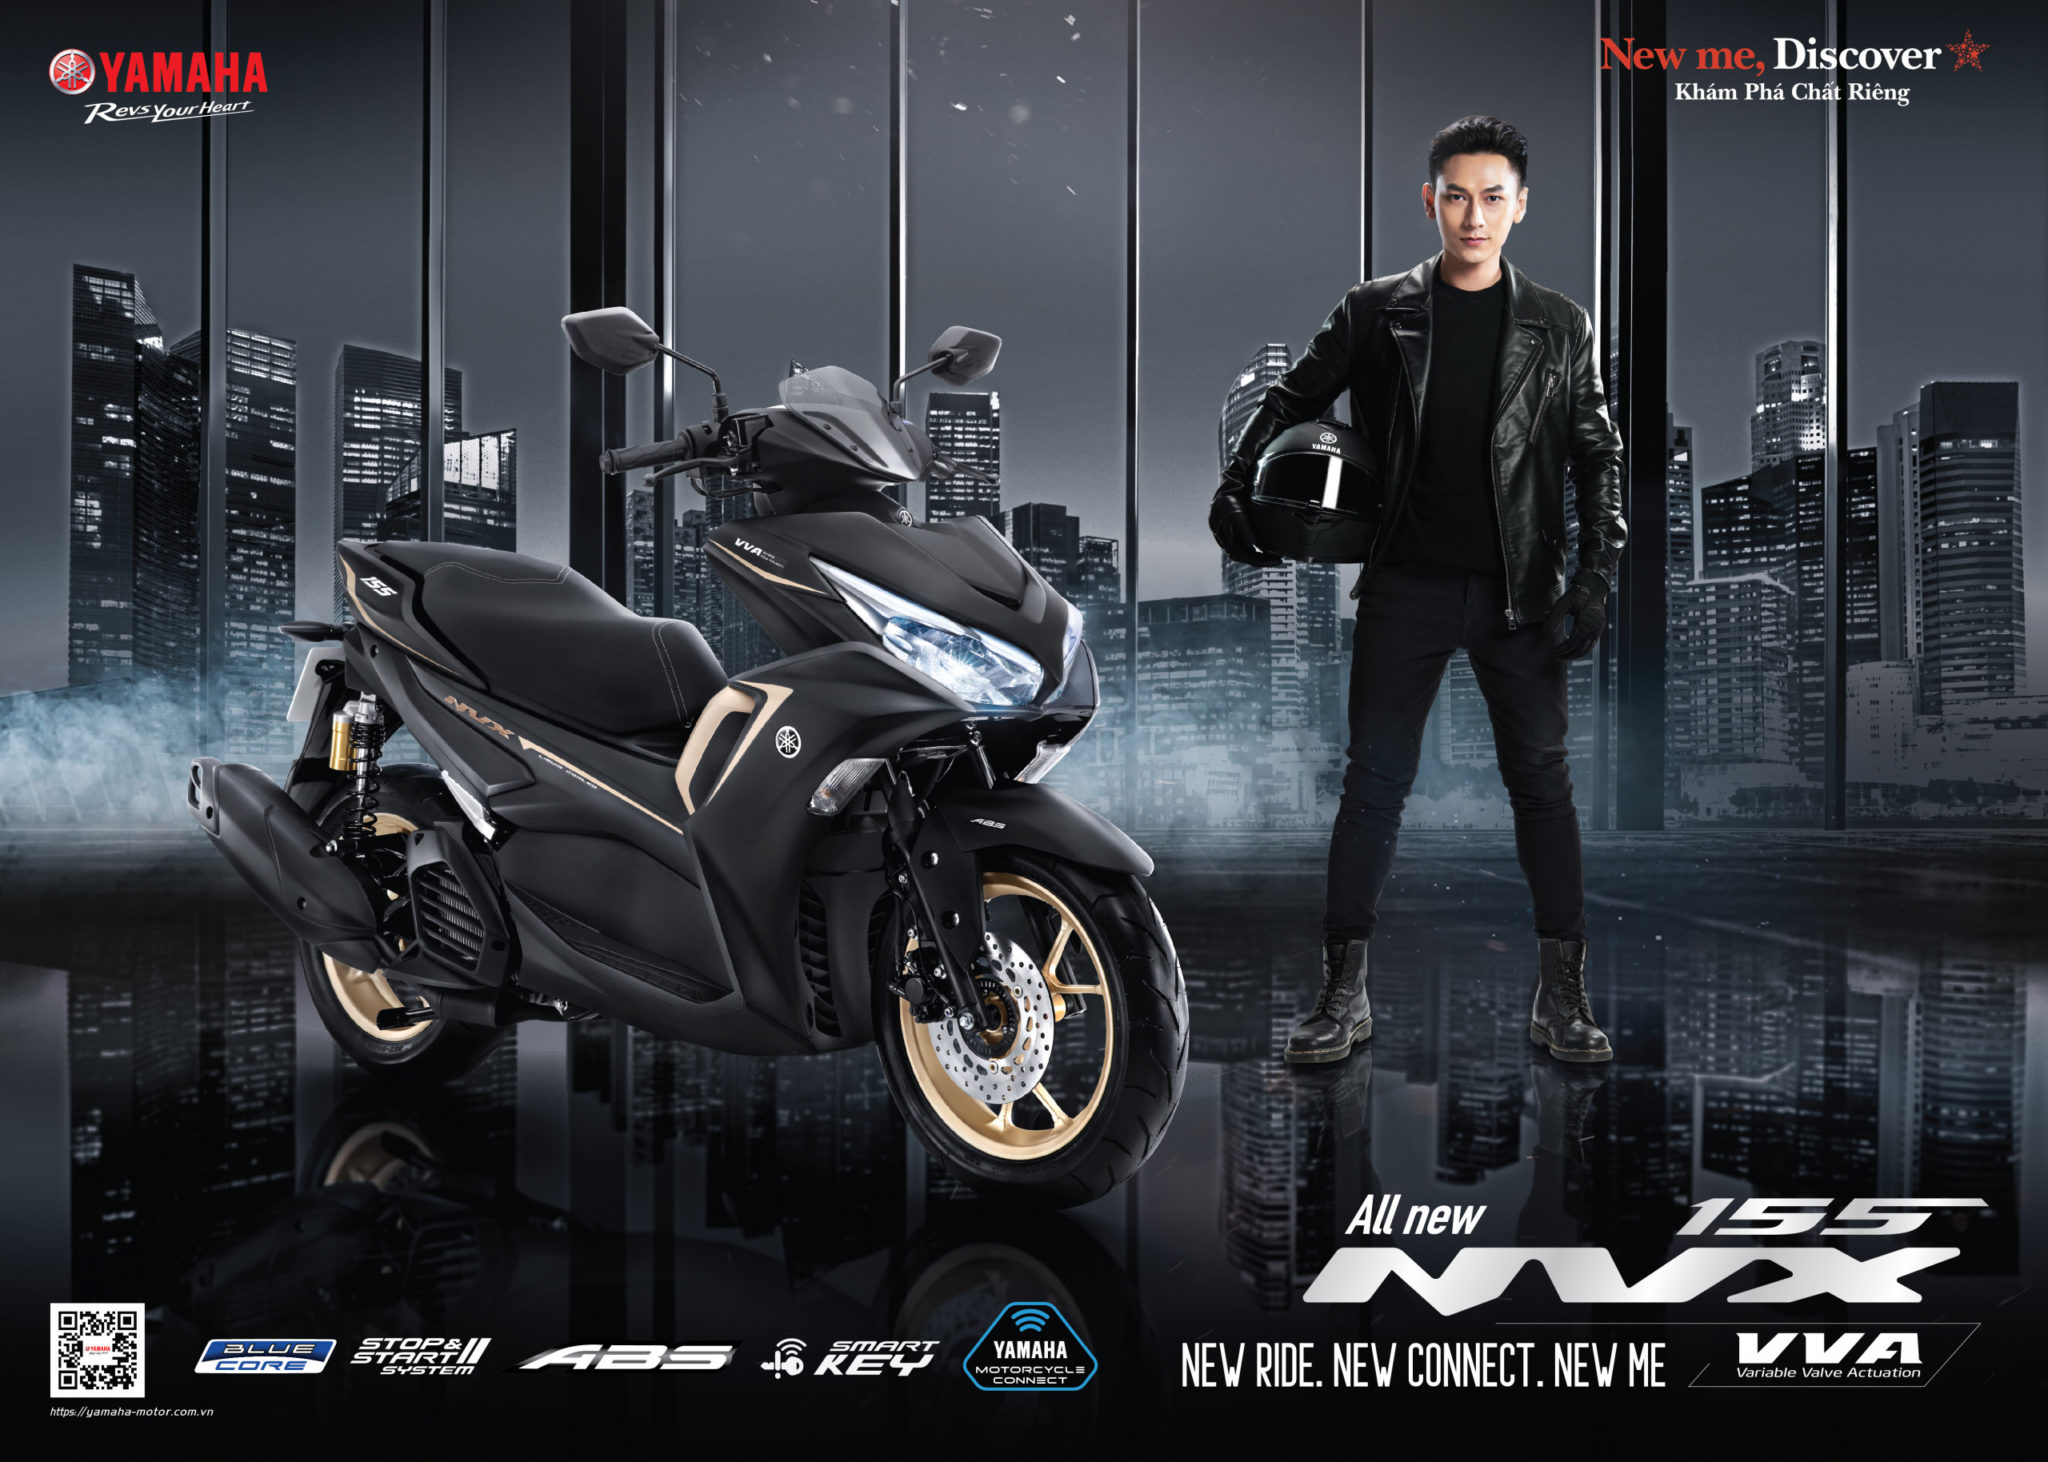 2021 Yamaha NVX V2 to be launched in Malaysia on the 28th of April?